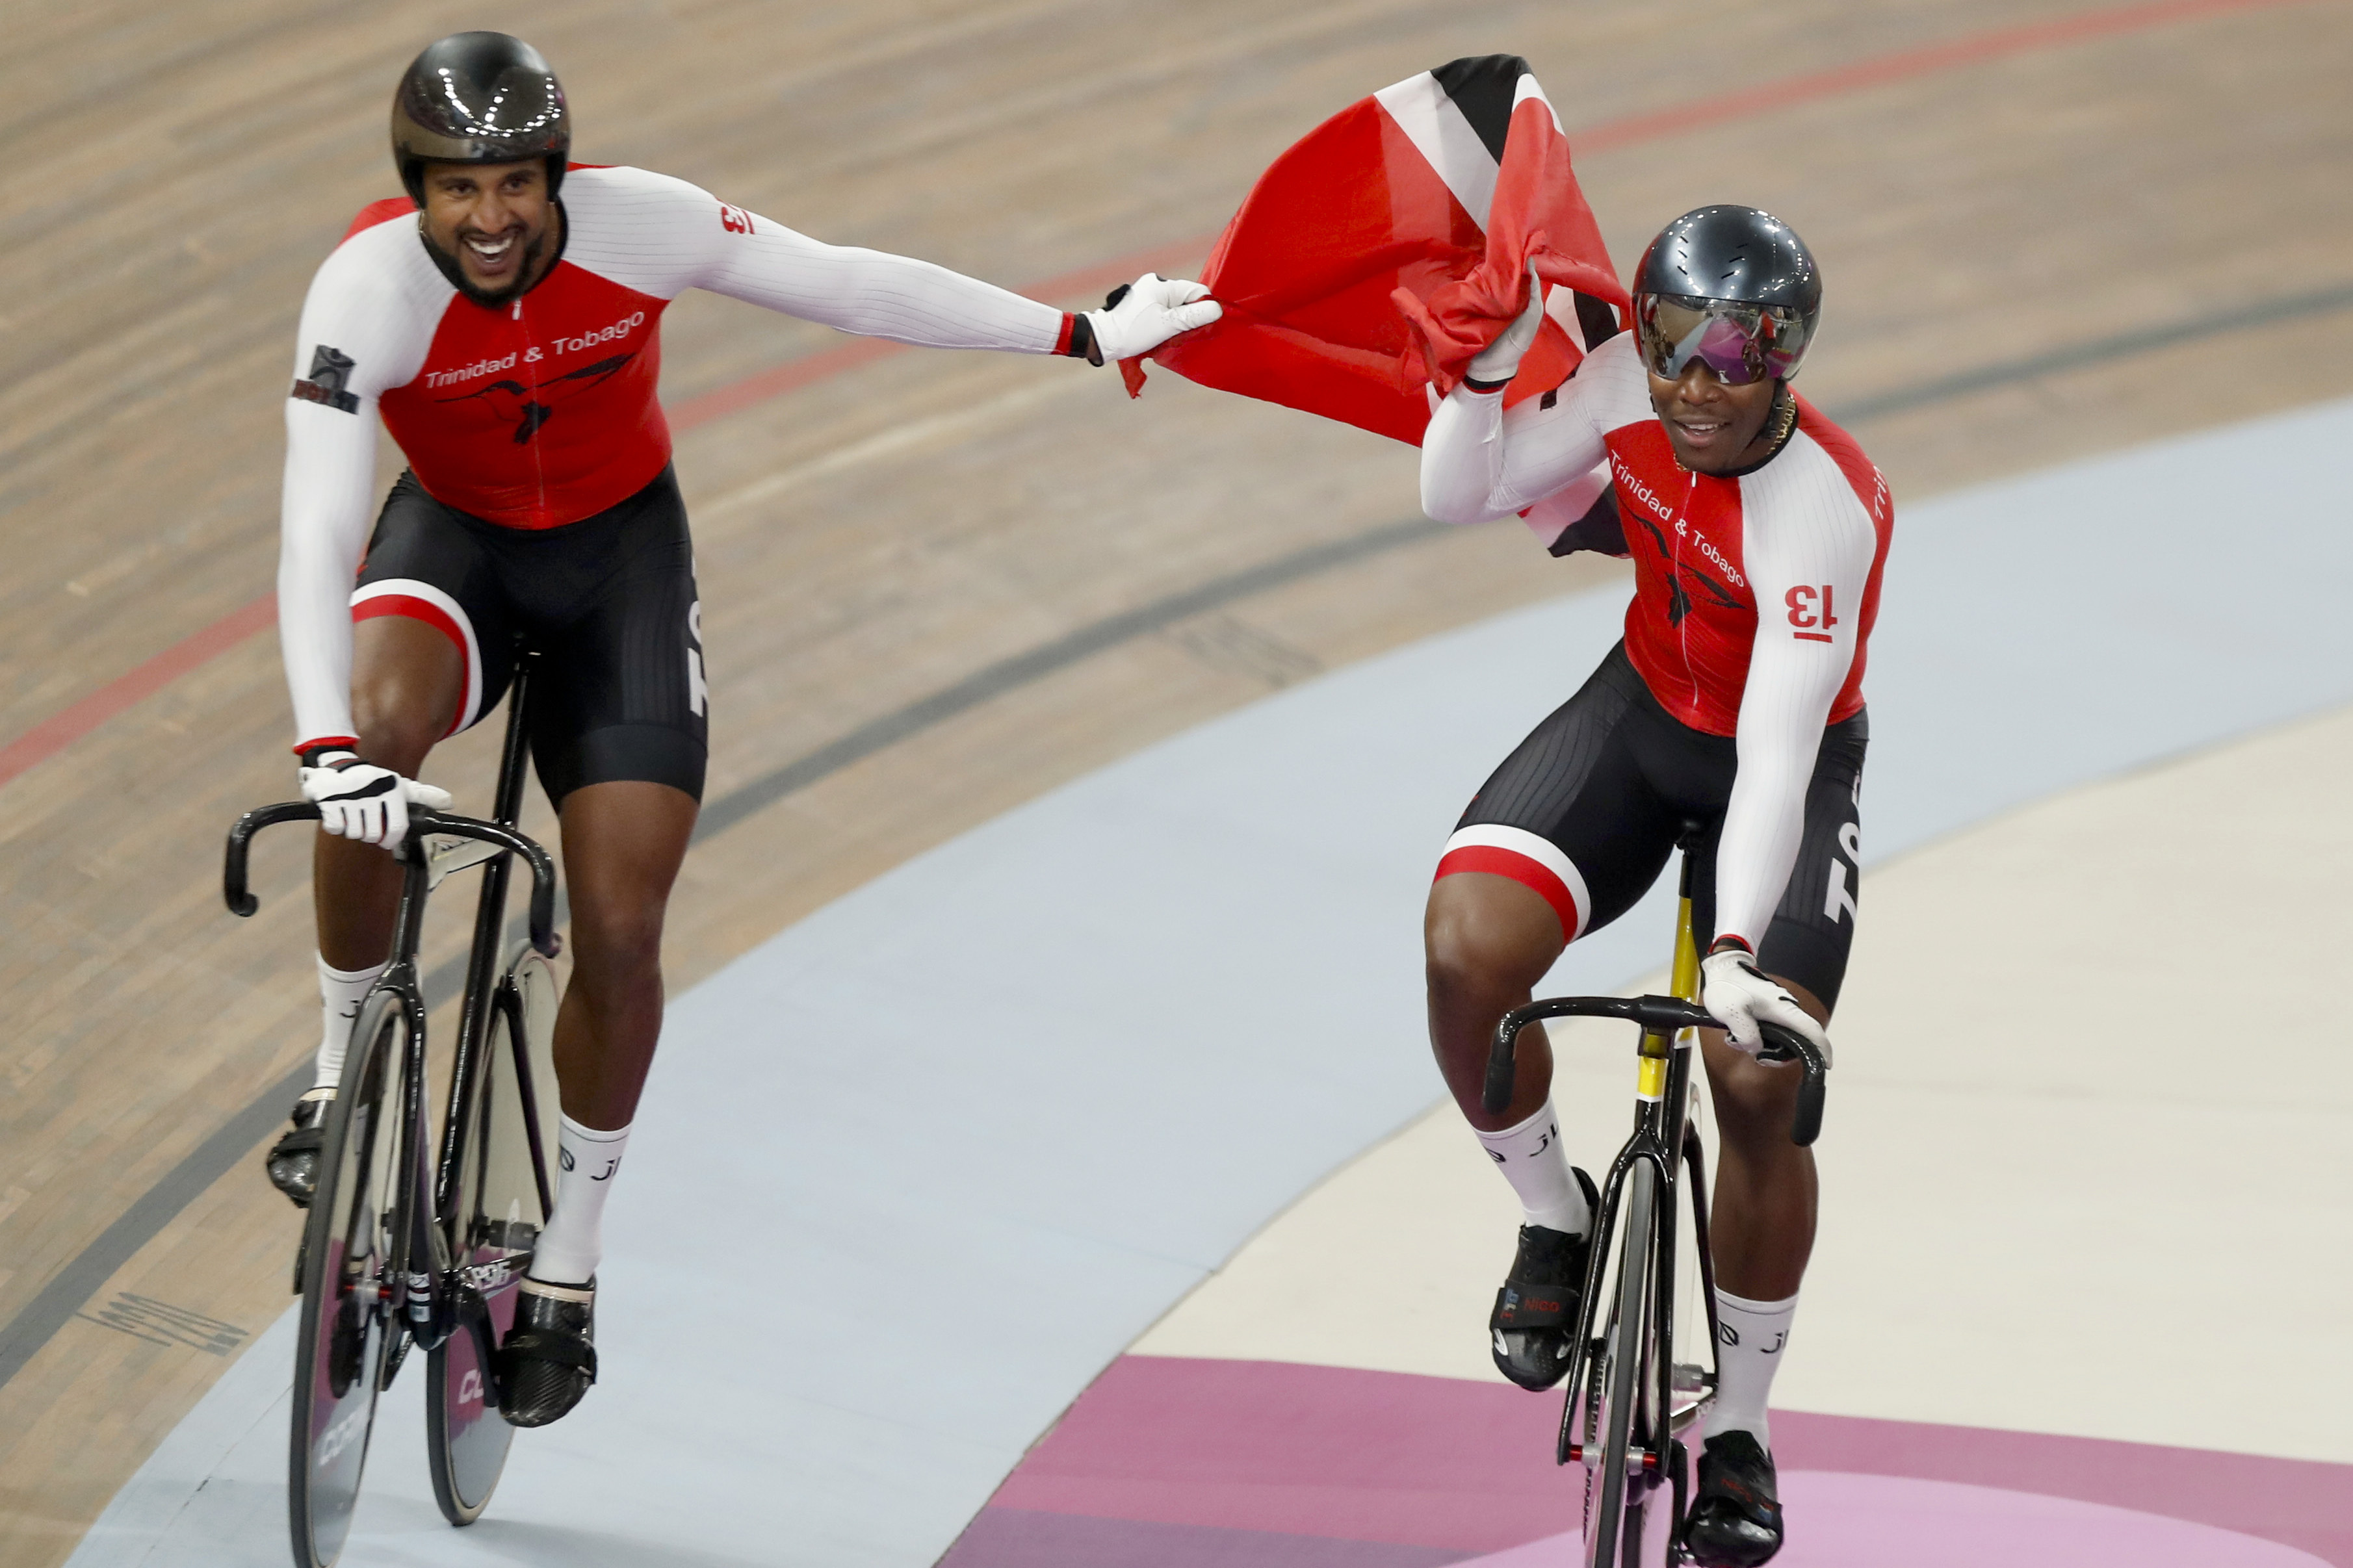 Trinidad and Tobago cycling team members, composed of Keron Bramble, Paul Nicholas and Njisane Phillip, celebrate winning the gold medal in the cycling track men's team sprint at the Pan American Games in Lima, Peru, Thursday, Aug. 1, 2019. (AP Photo/Fernando Llano)